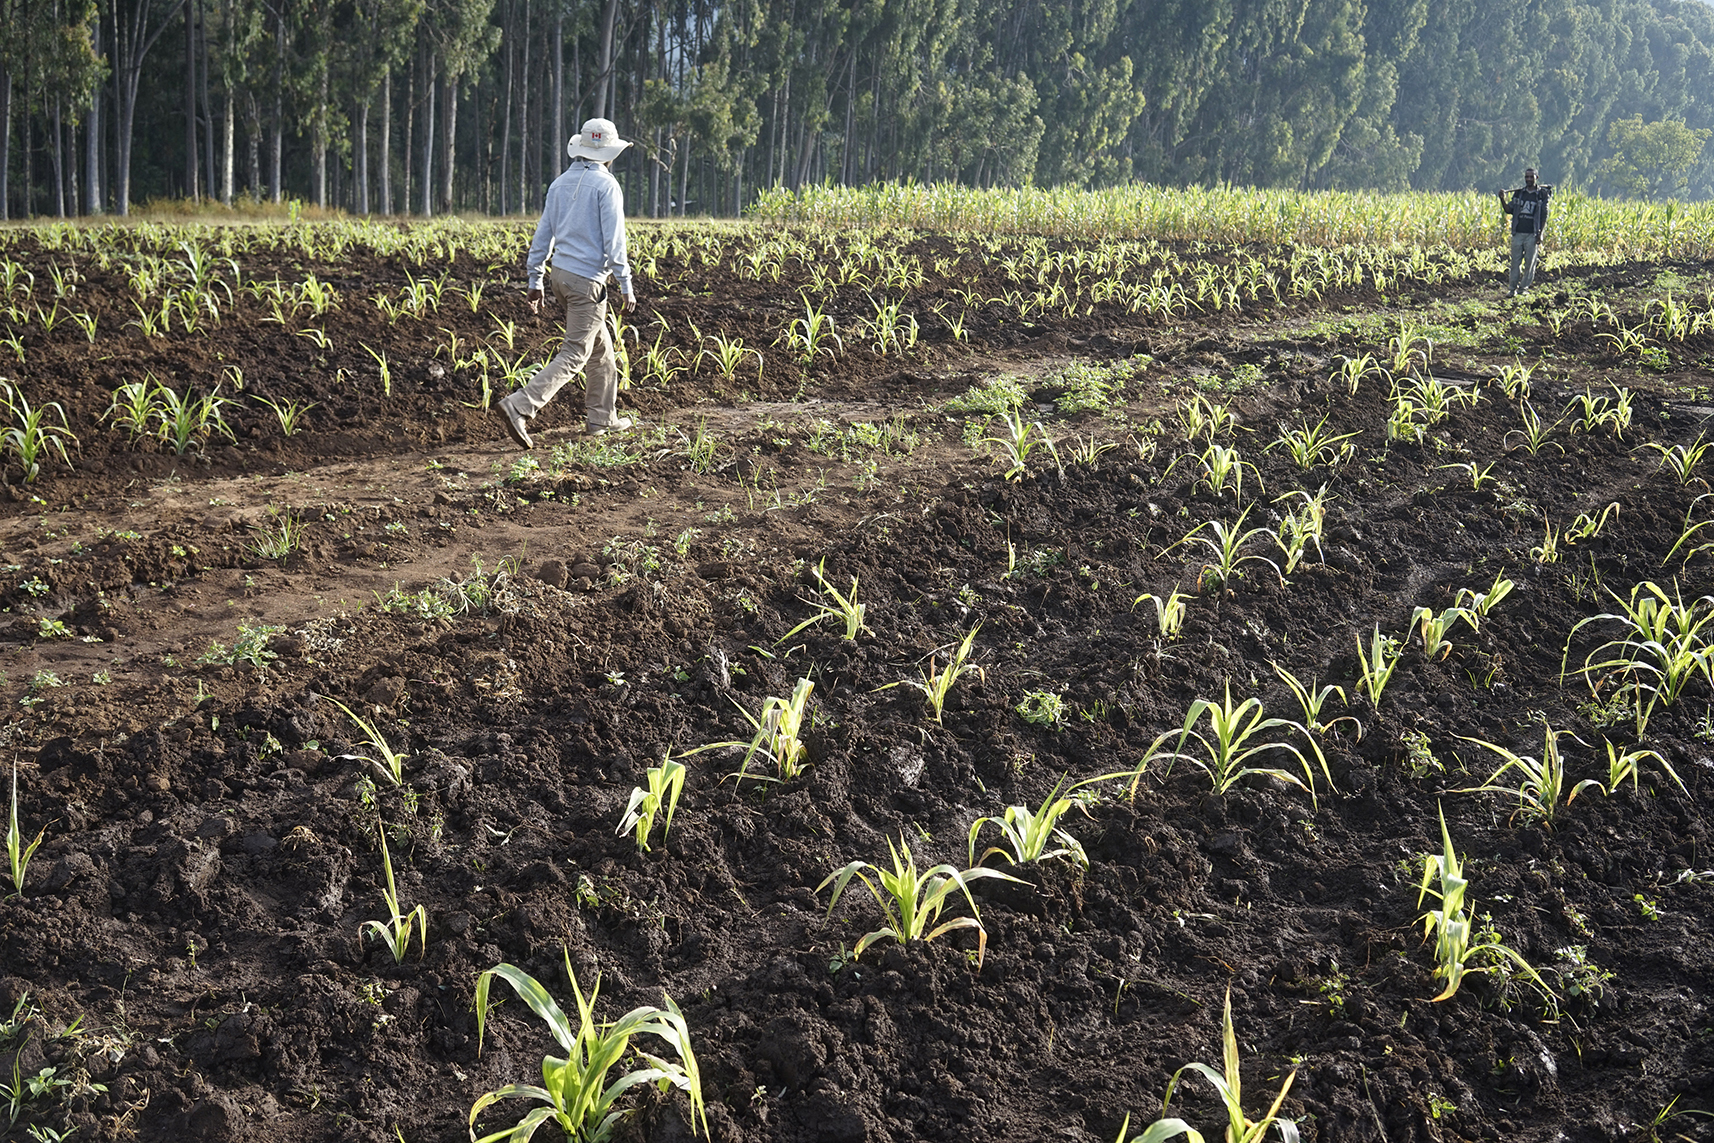 Researchers visit maize fields in Ethiopia's Wondo Genet Agricultural Research Center. (Photo: Peter Lowe/CIMMYT)